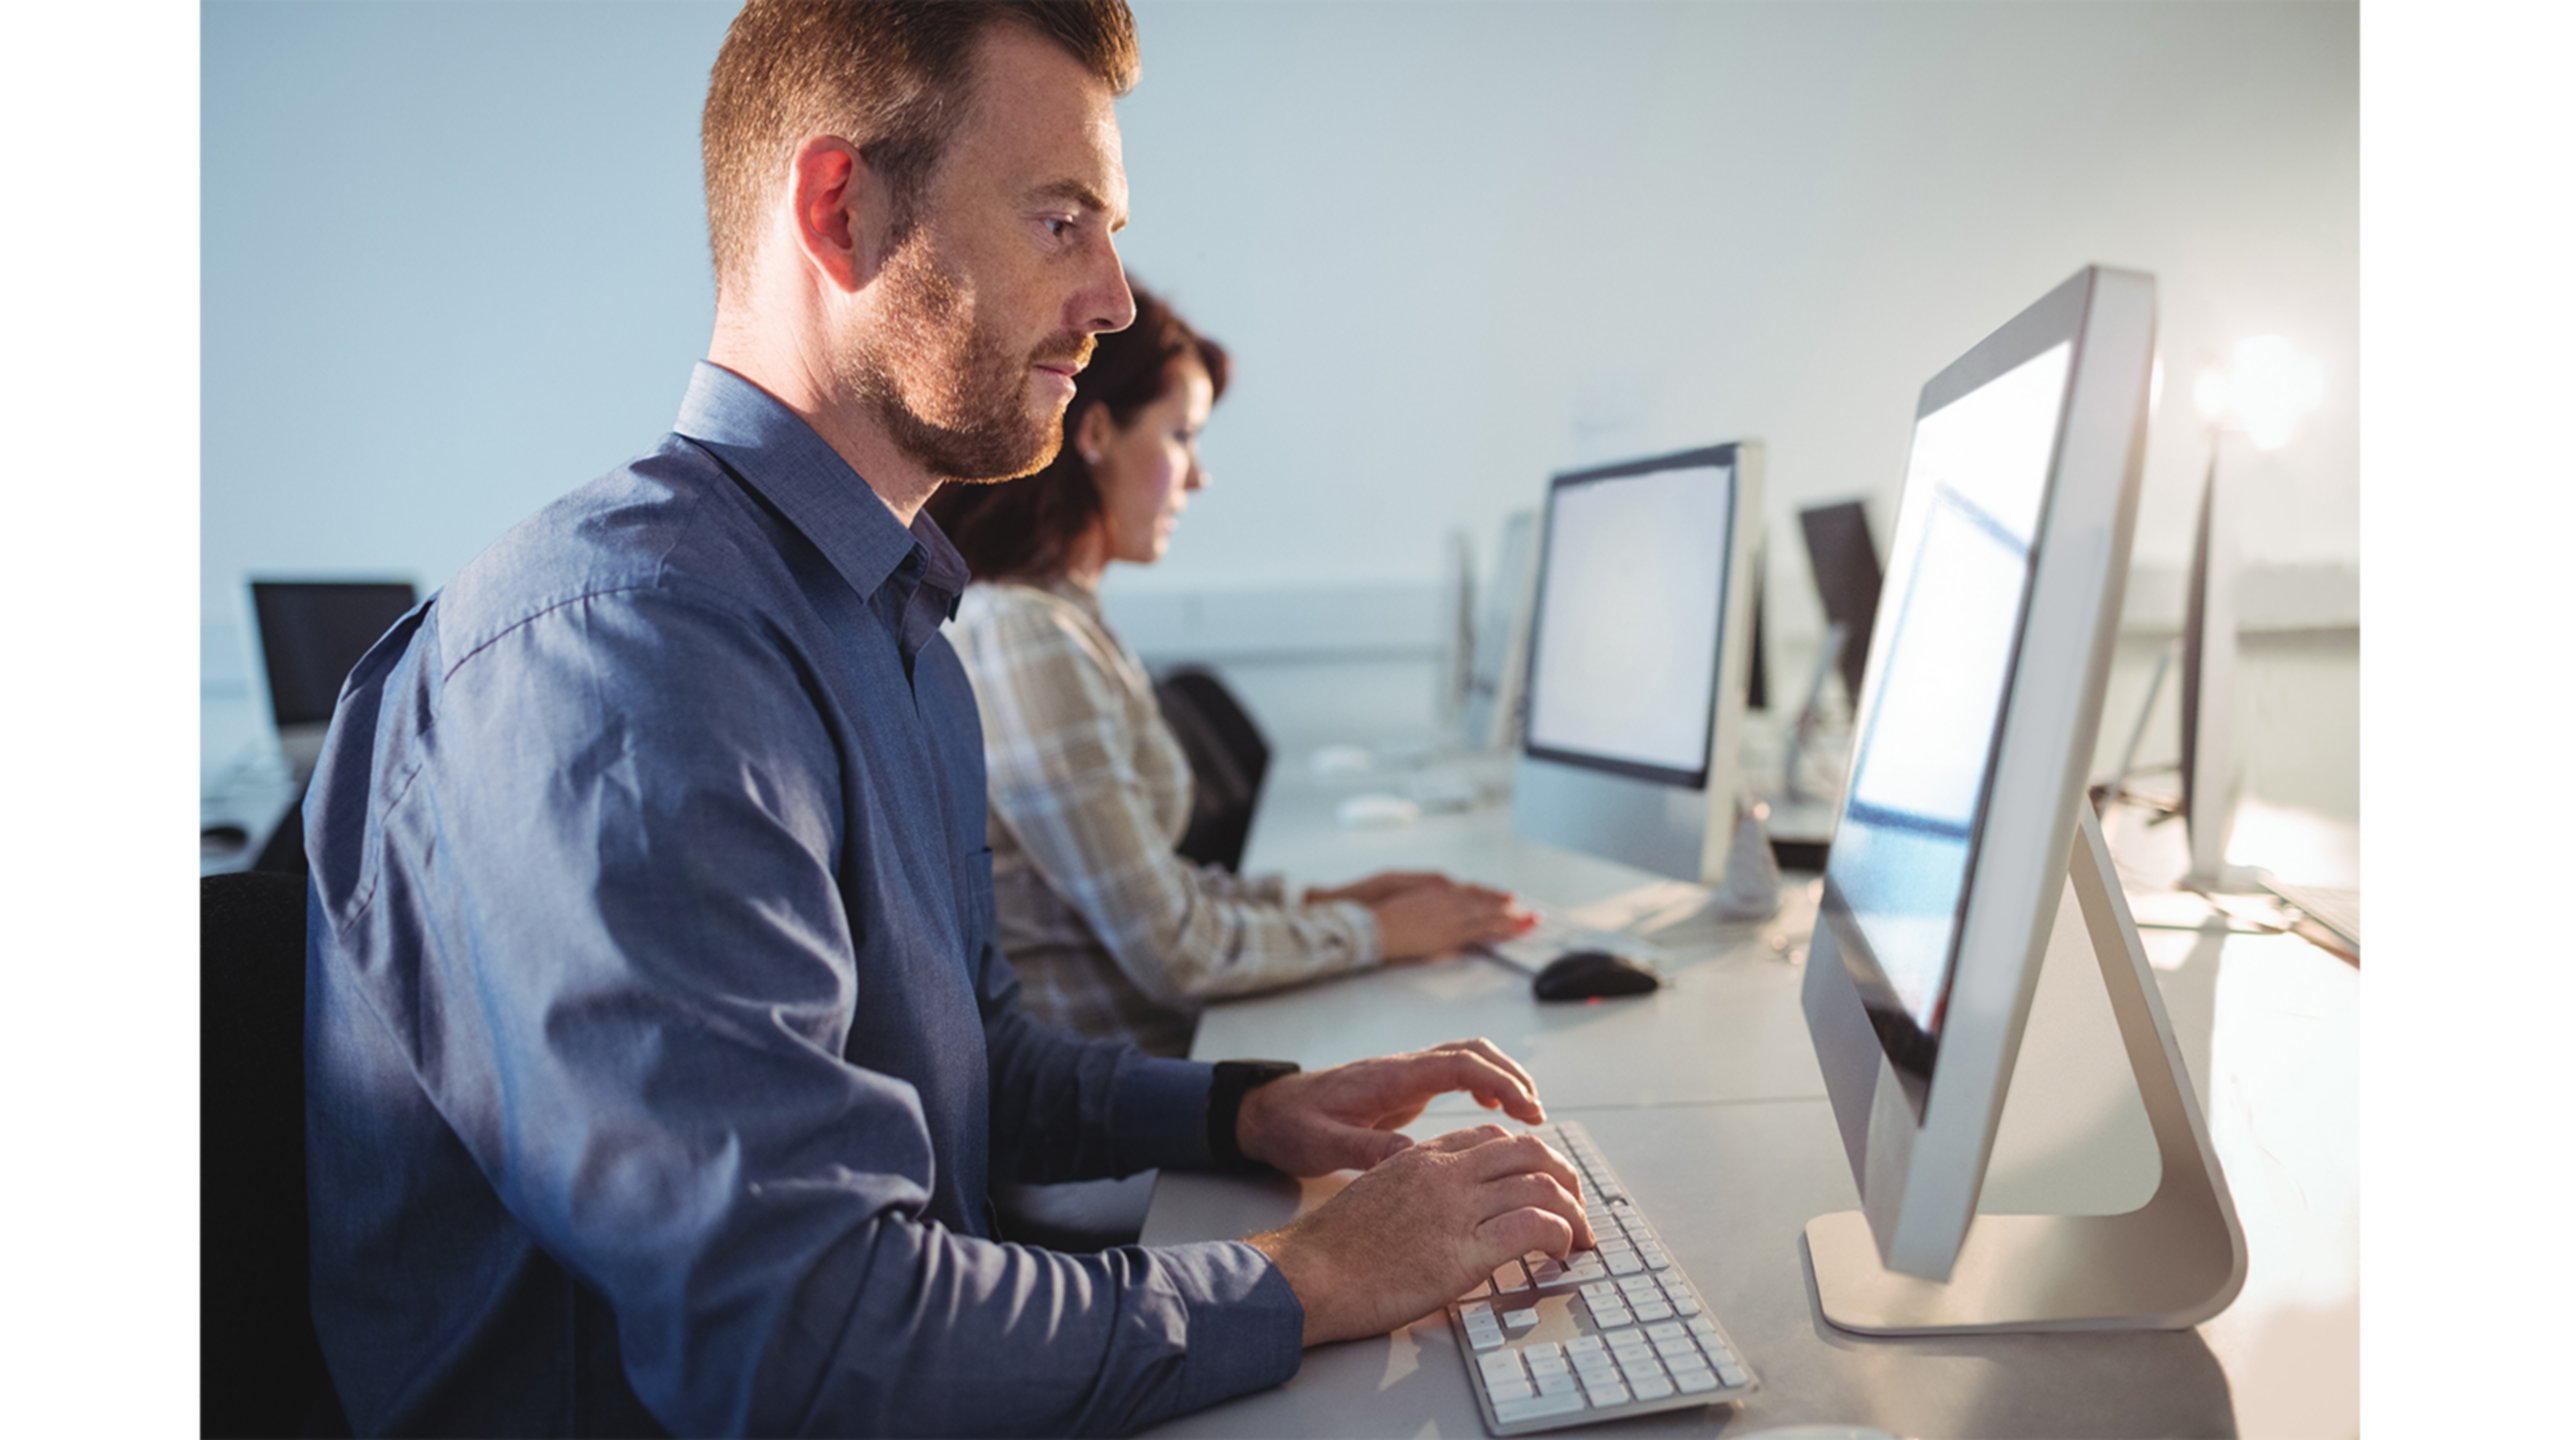 Man and woman sitting in front of computers engaged in on-line training